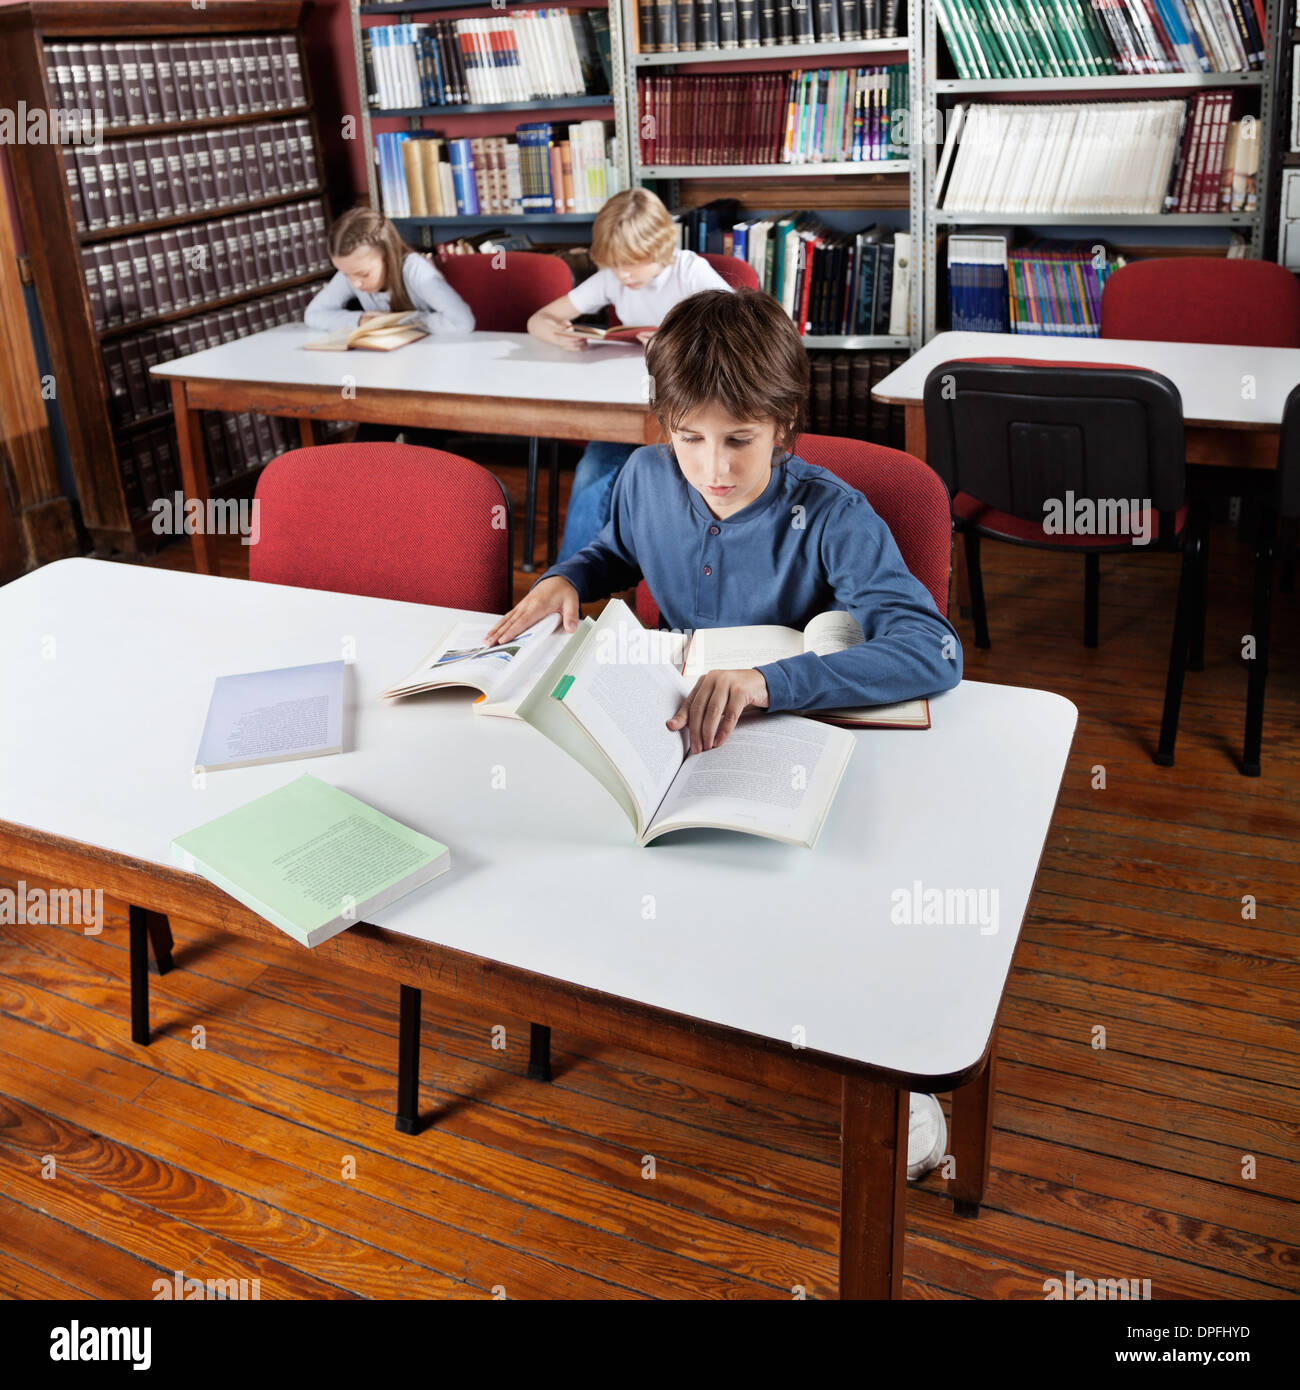 Little Boy Reading Books In Library - Stock Image